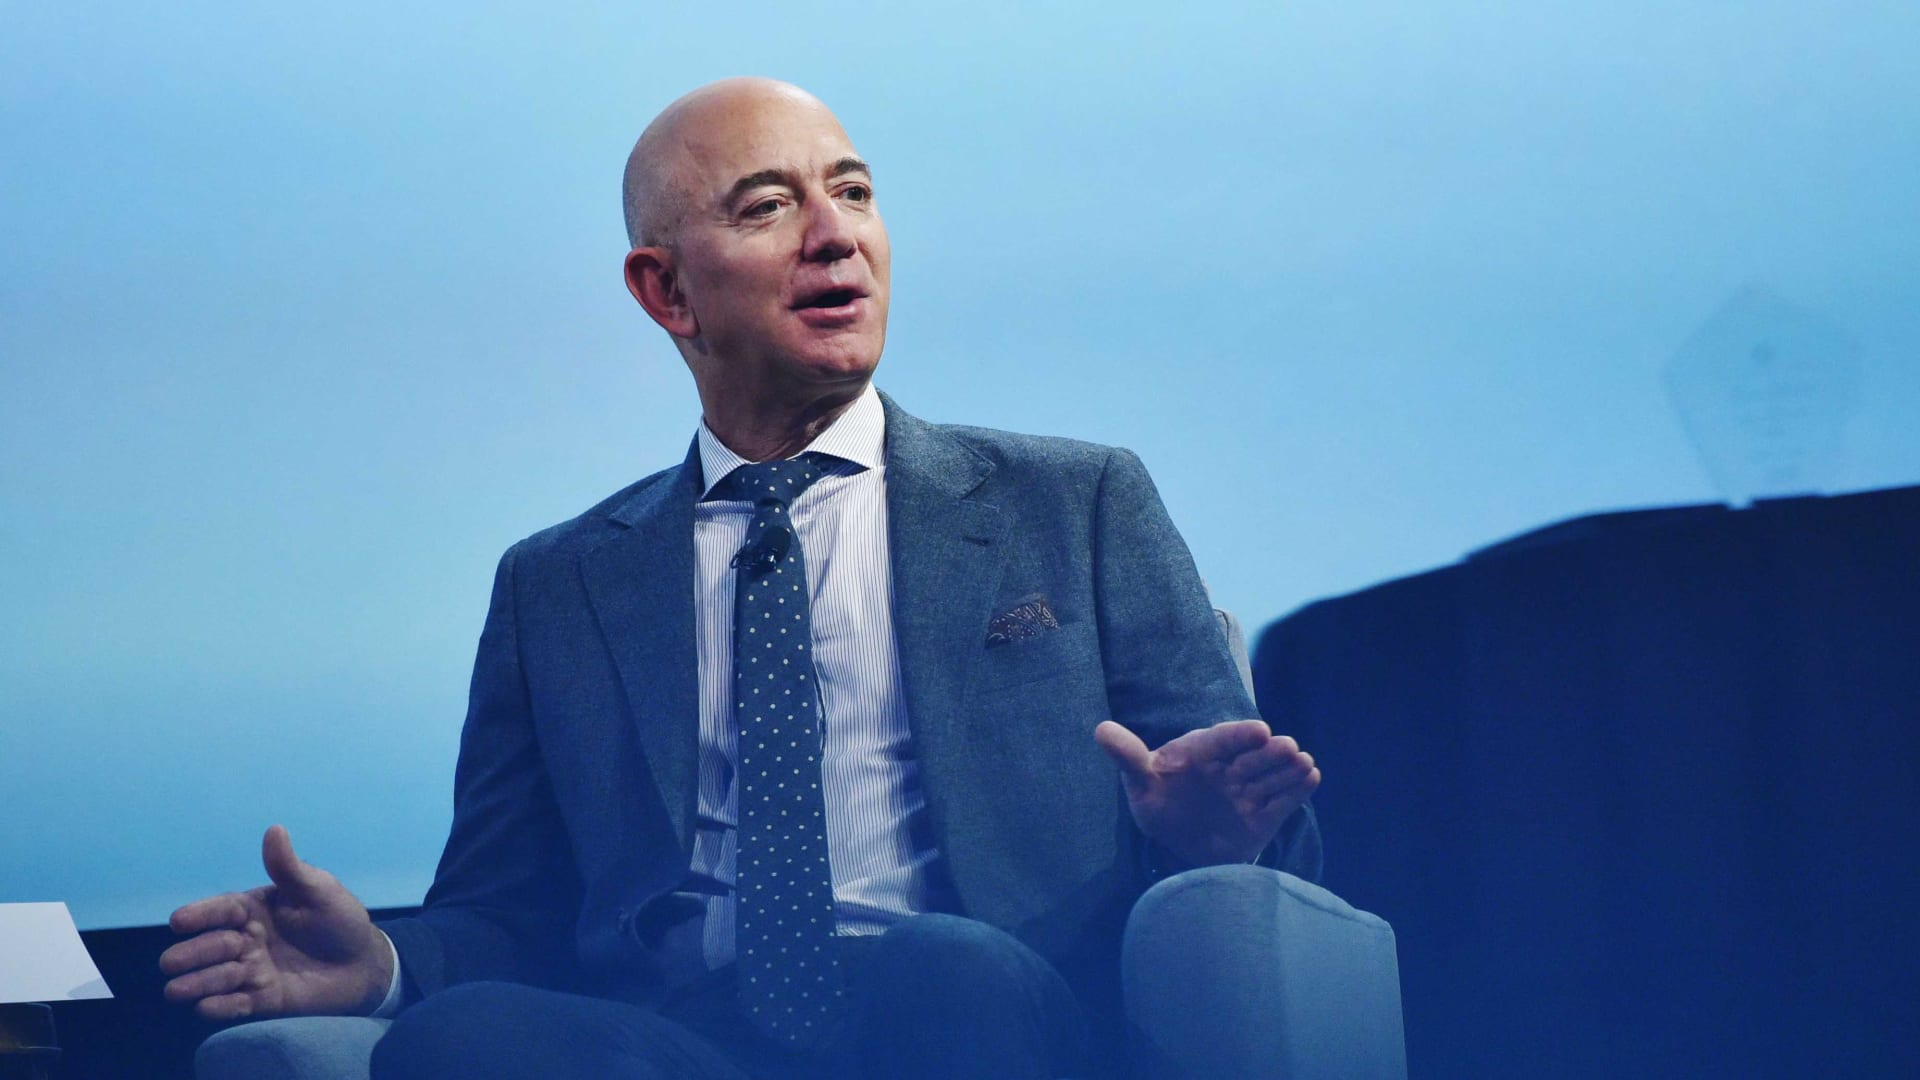 Amazon's Most Interesting Review Turns 7. Here's What It Says About Jeff Bezos